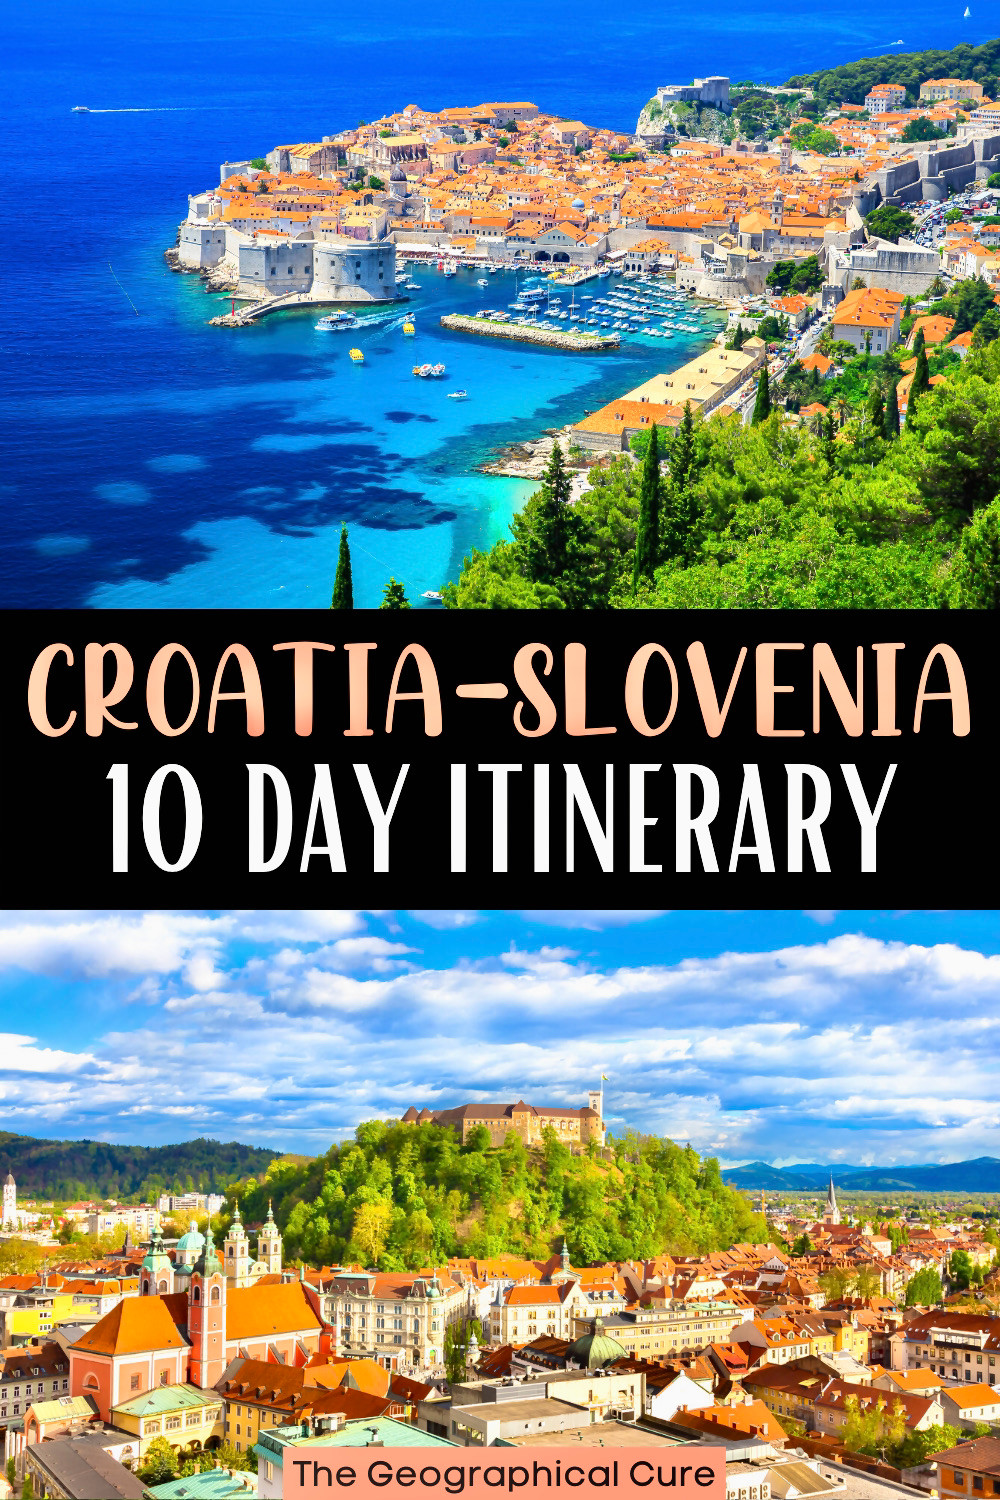 the best ten day itinerary for visiting Croatia and Slovenia